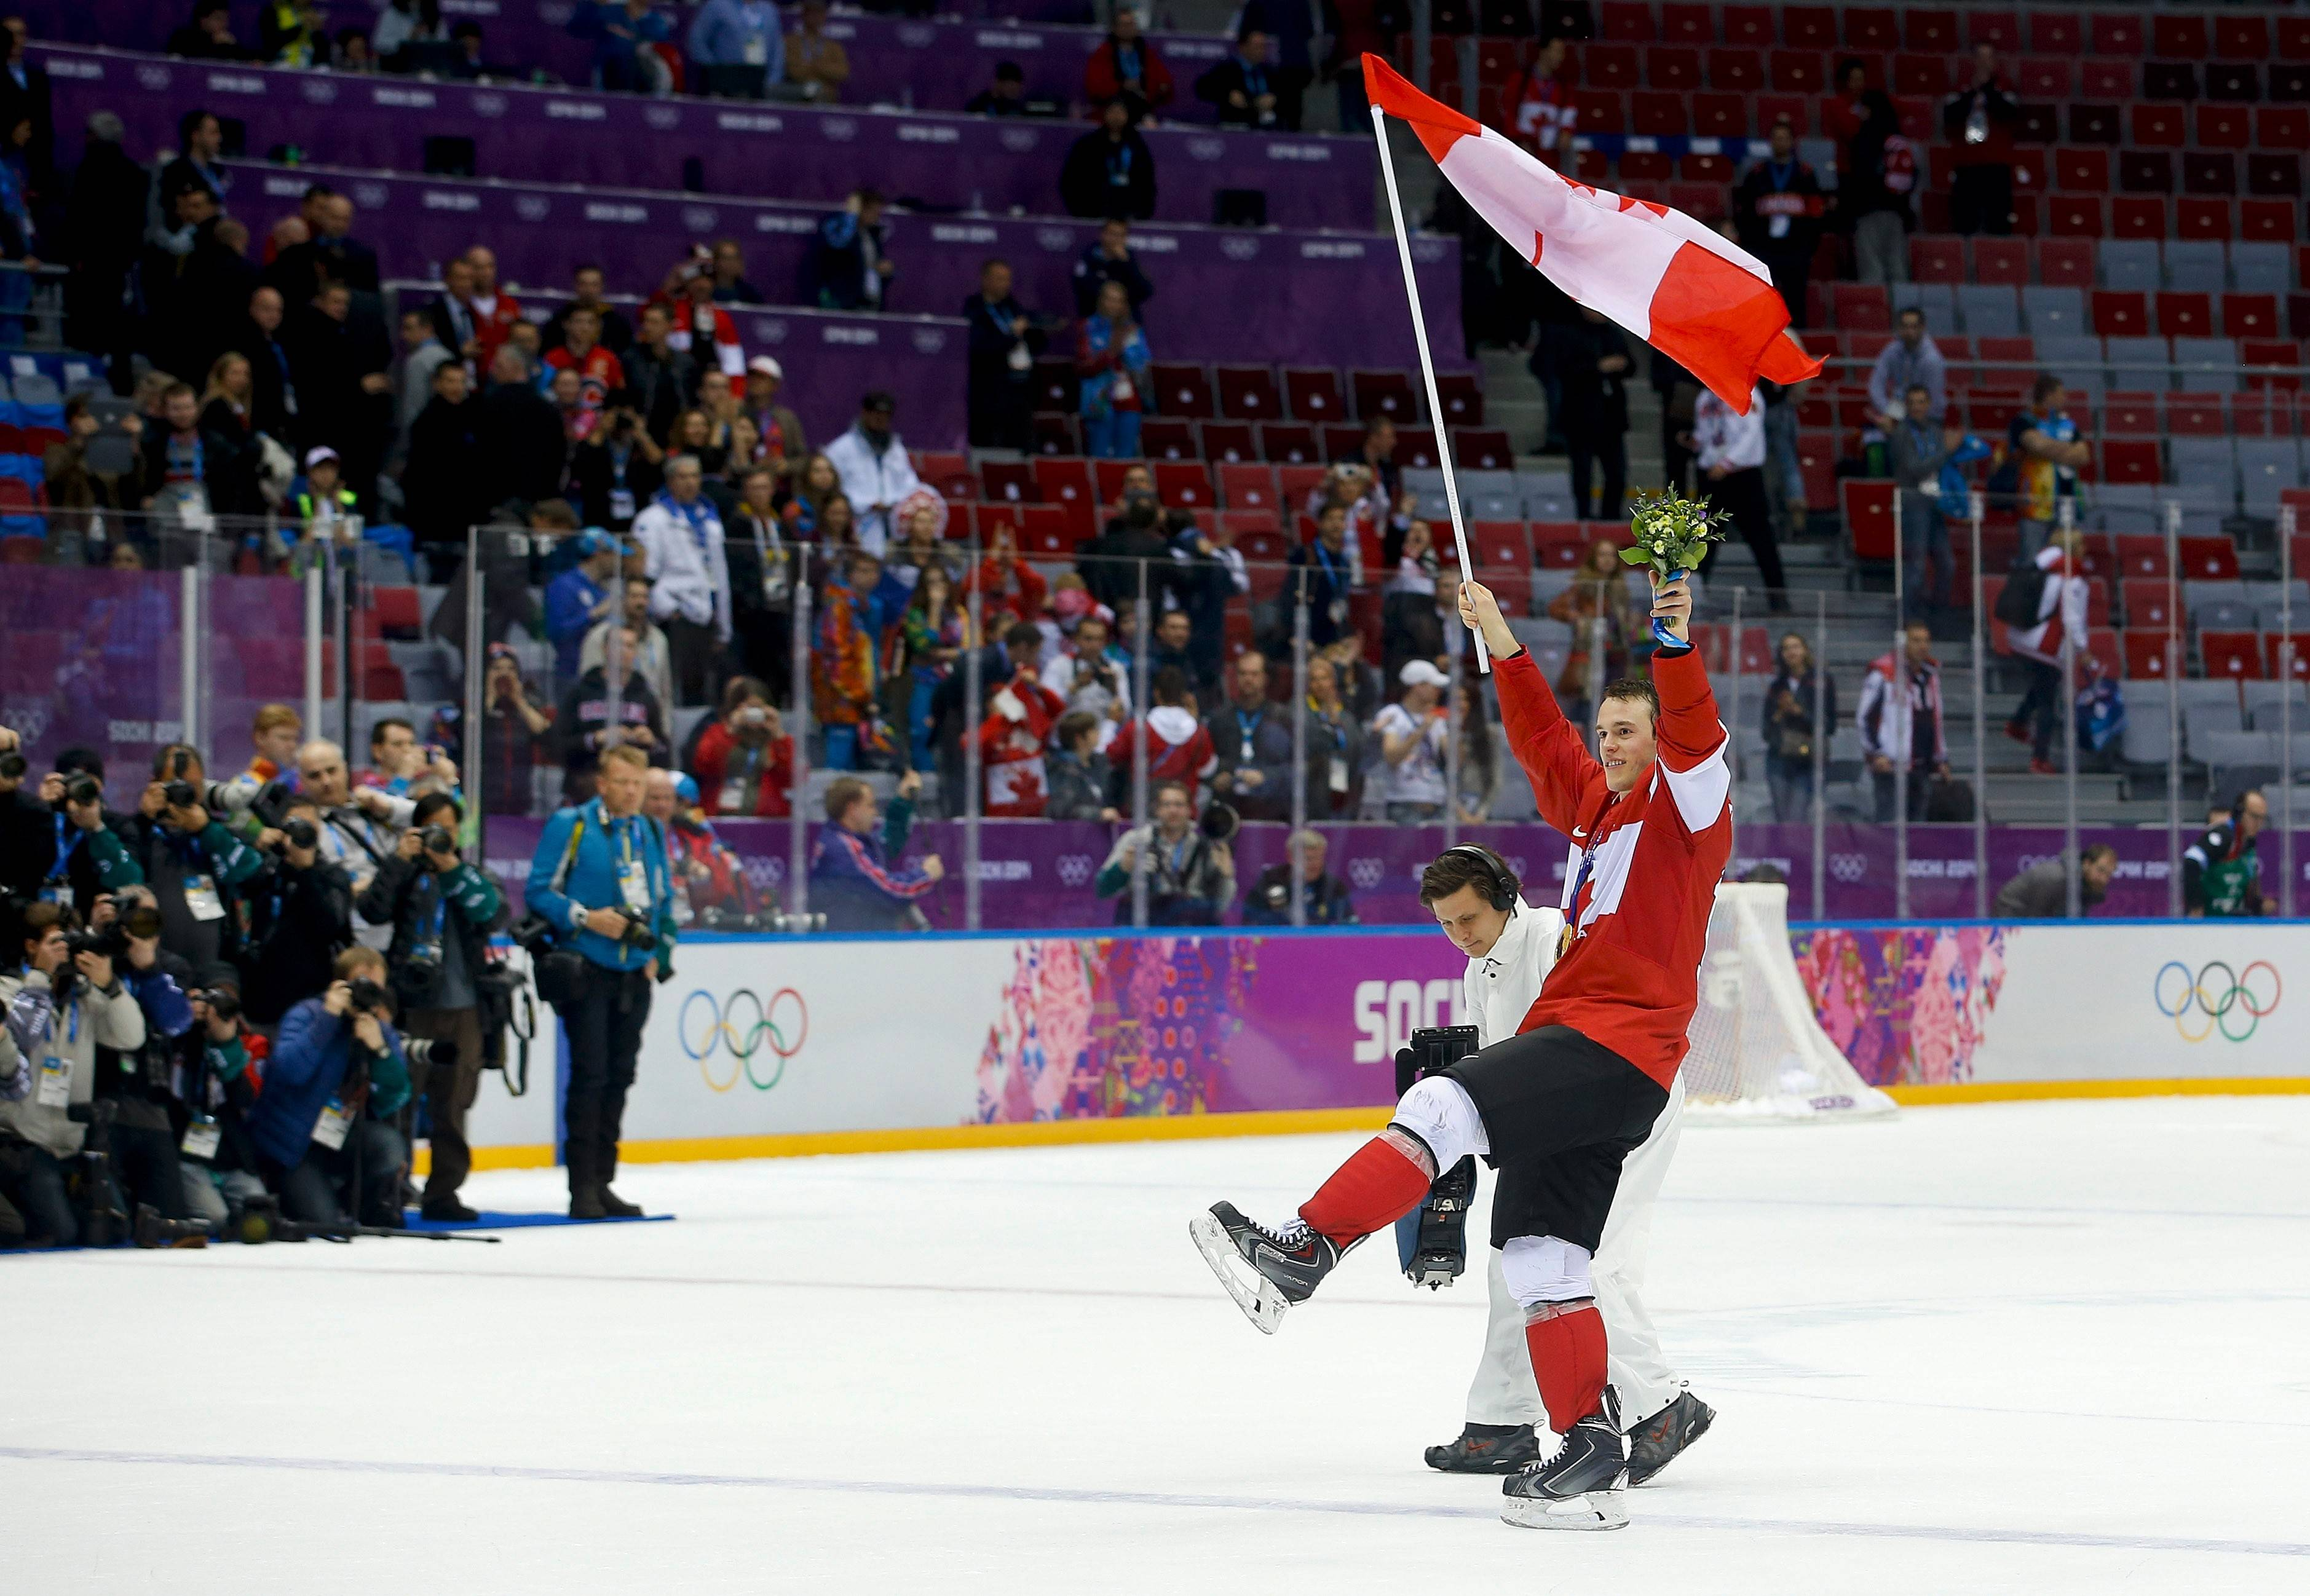 Canada forward Jonathan Toews skates around the rink waving the Canadian flag after Canada beat Sweden 3-0 in the men's gold medal ice hockey game Sunday at the 2014 Winter Olympics in Sochi, Russia. Toews will be back playing with the Blackhawks this week.